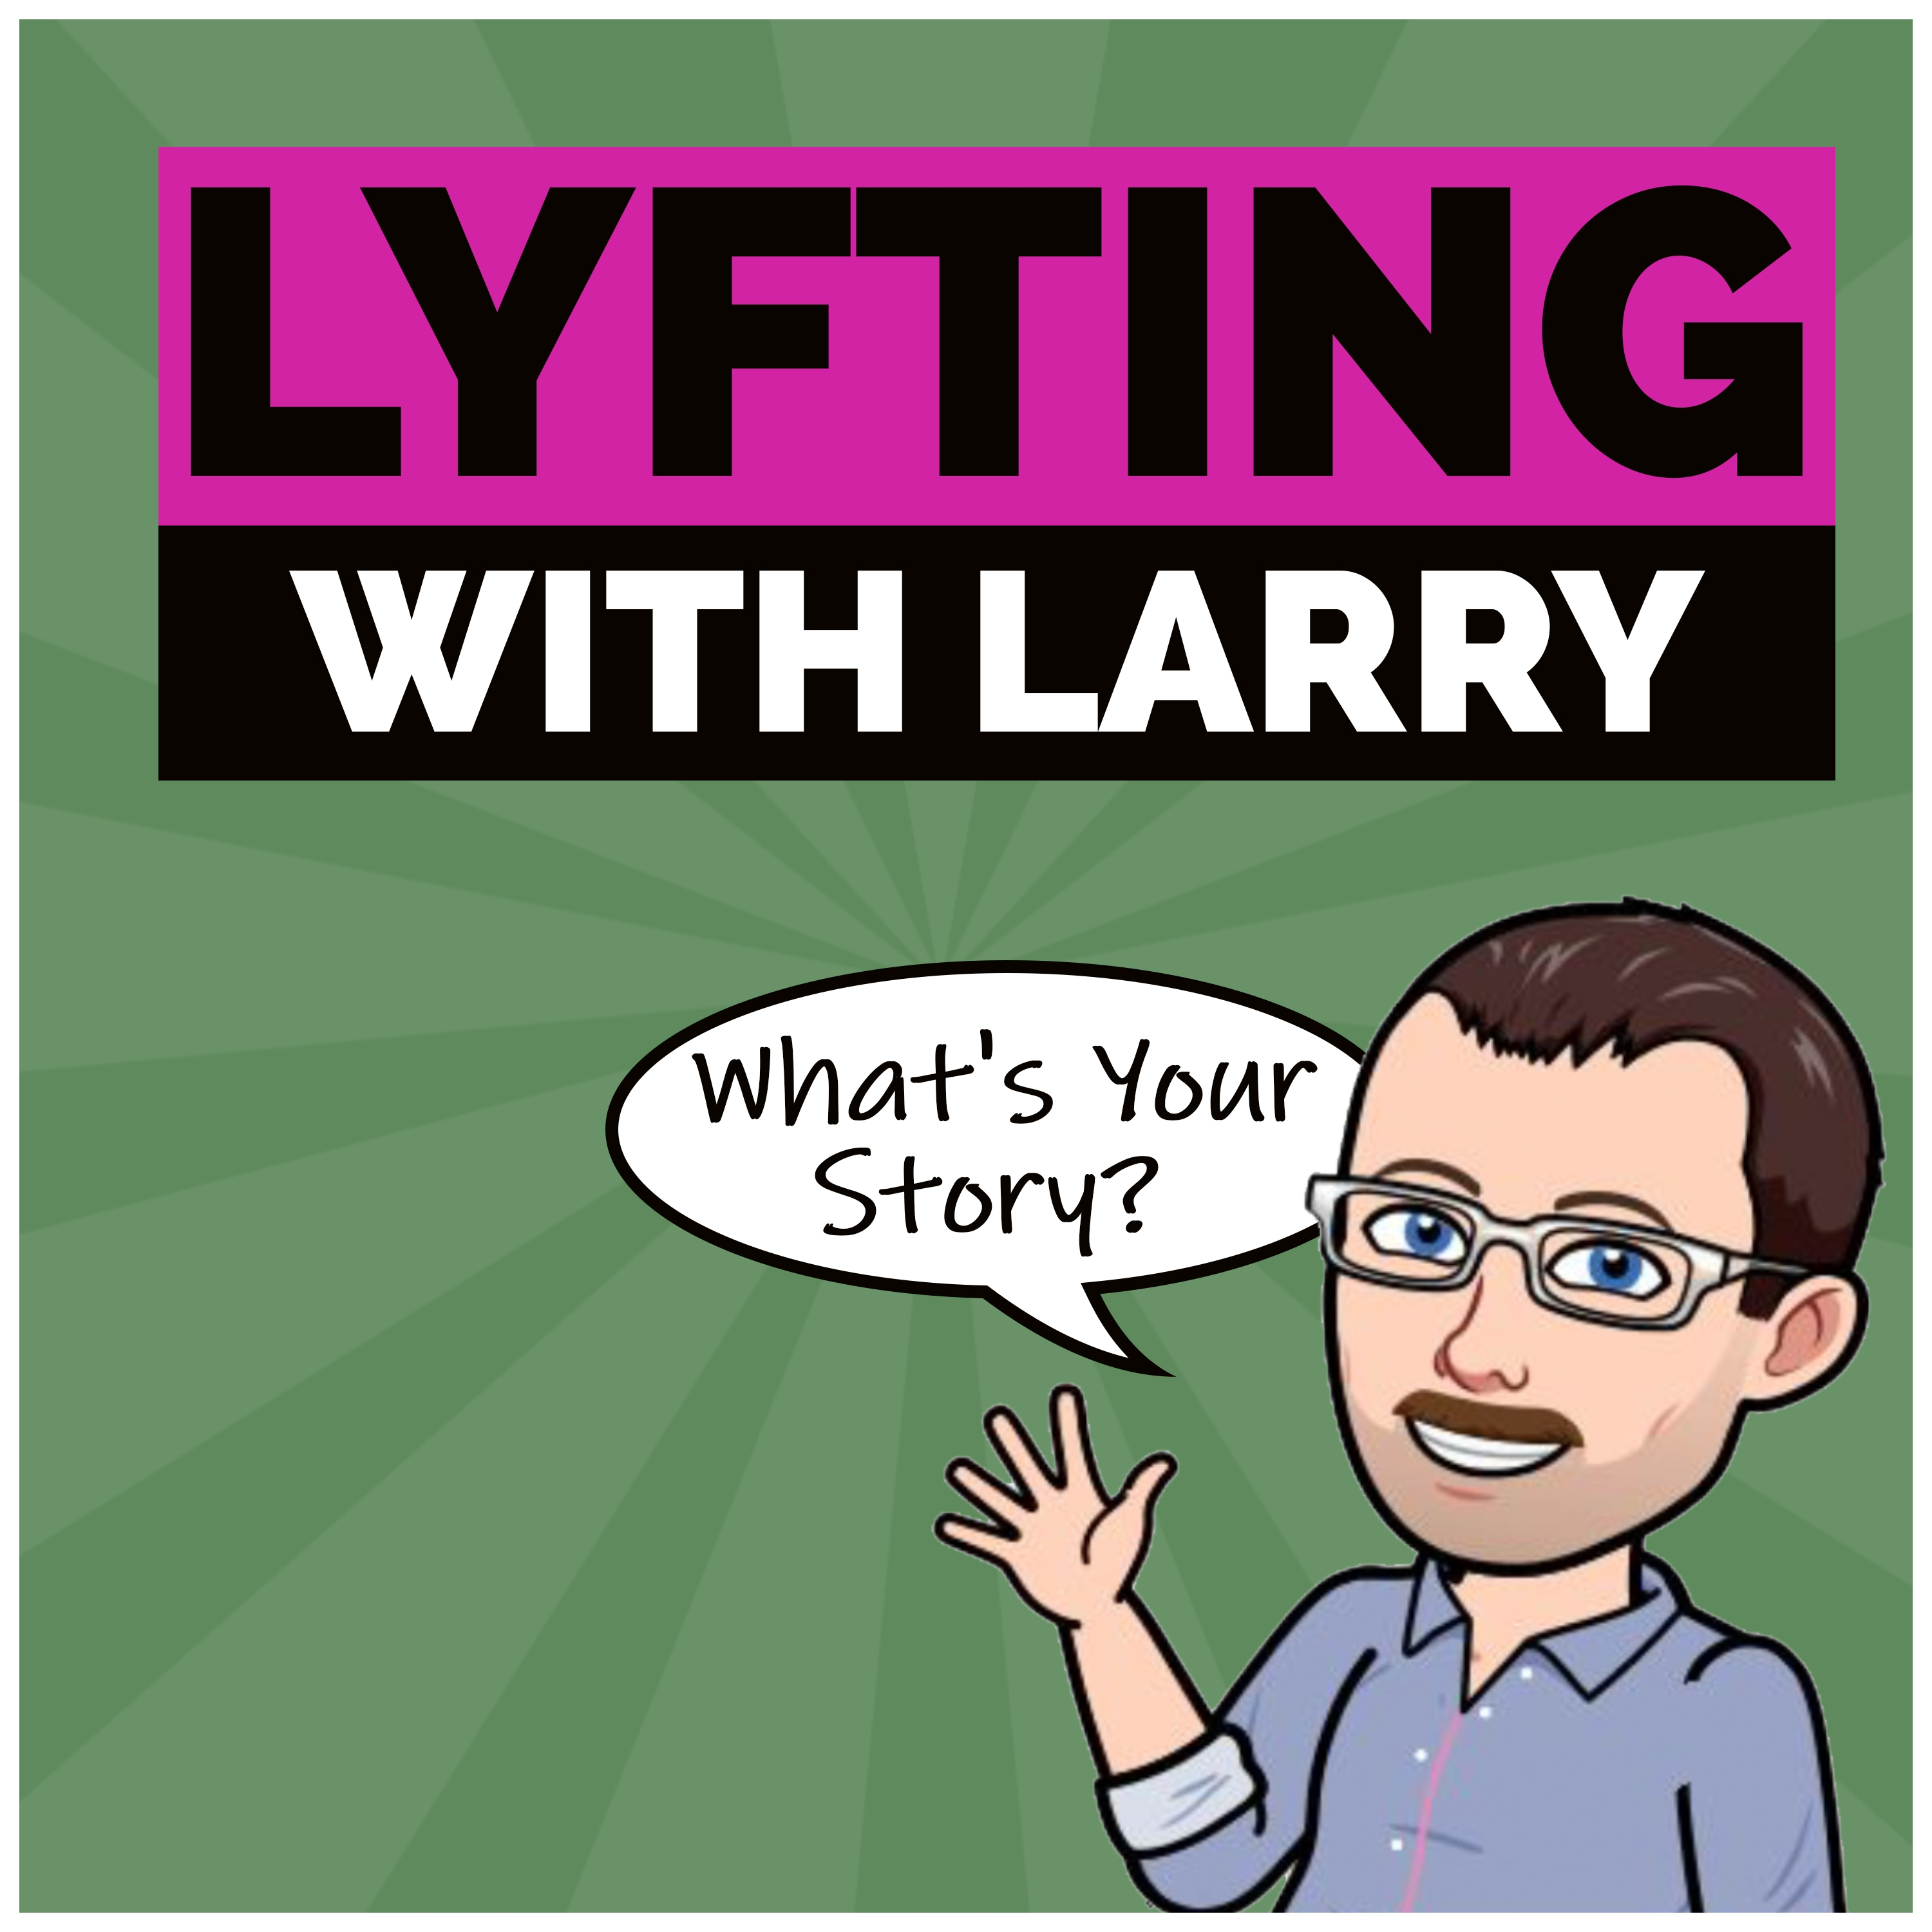 Lyfting With Larry… What's Your Story?